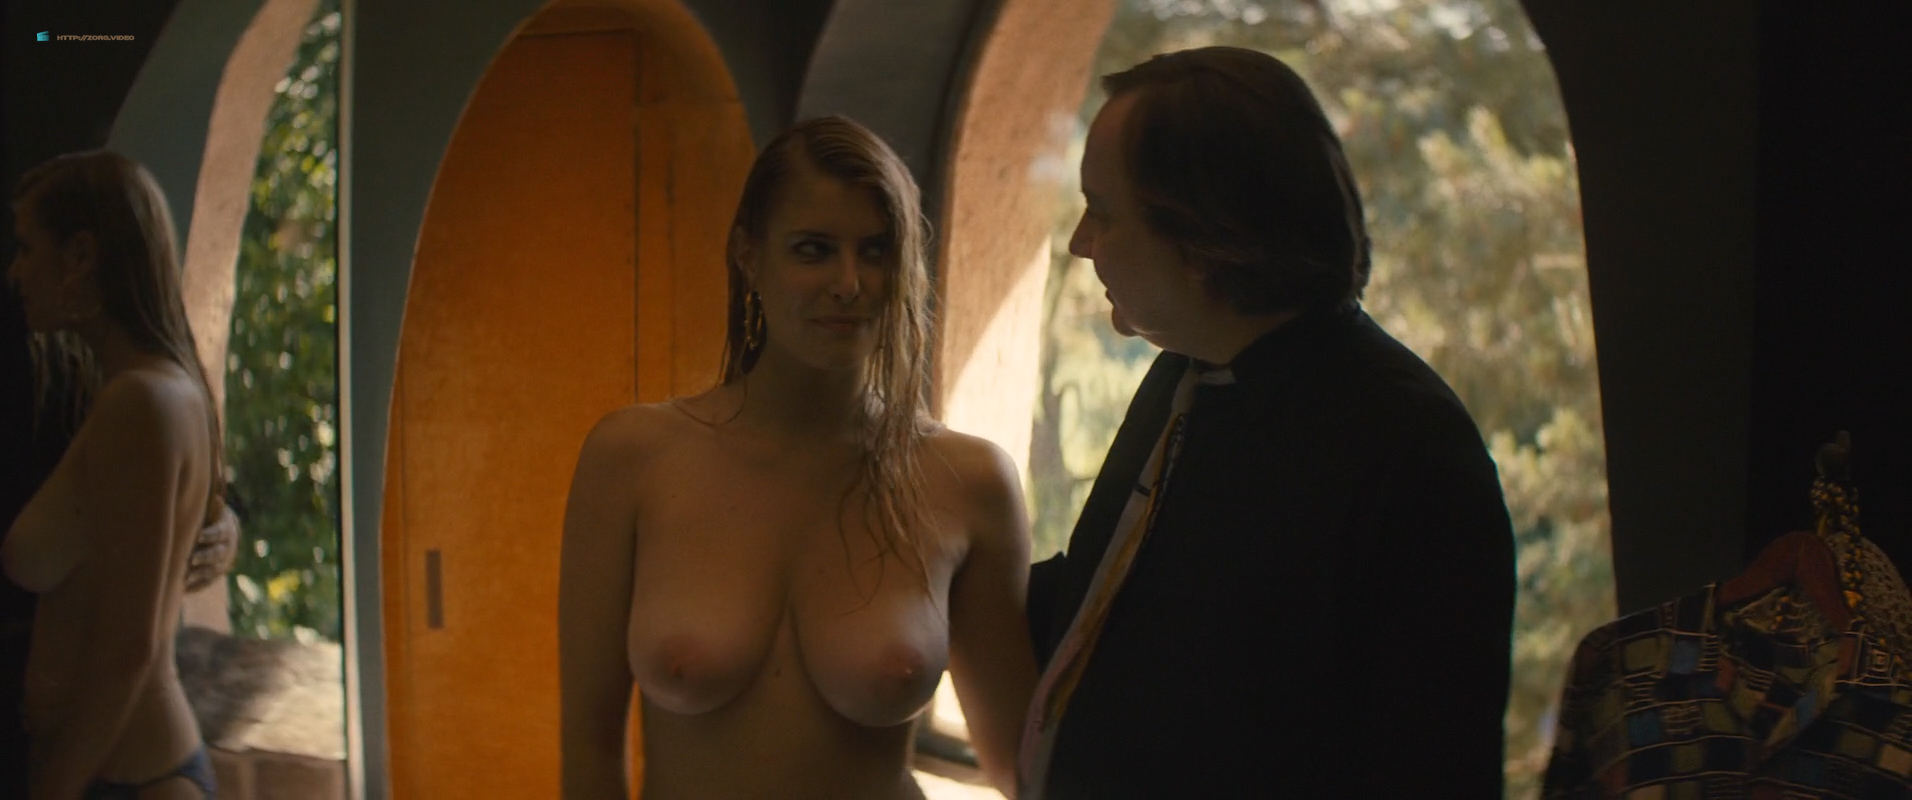 Camille Razat Nude And Sex Elisa Bachir Bey And Others -4559